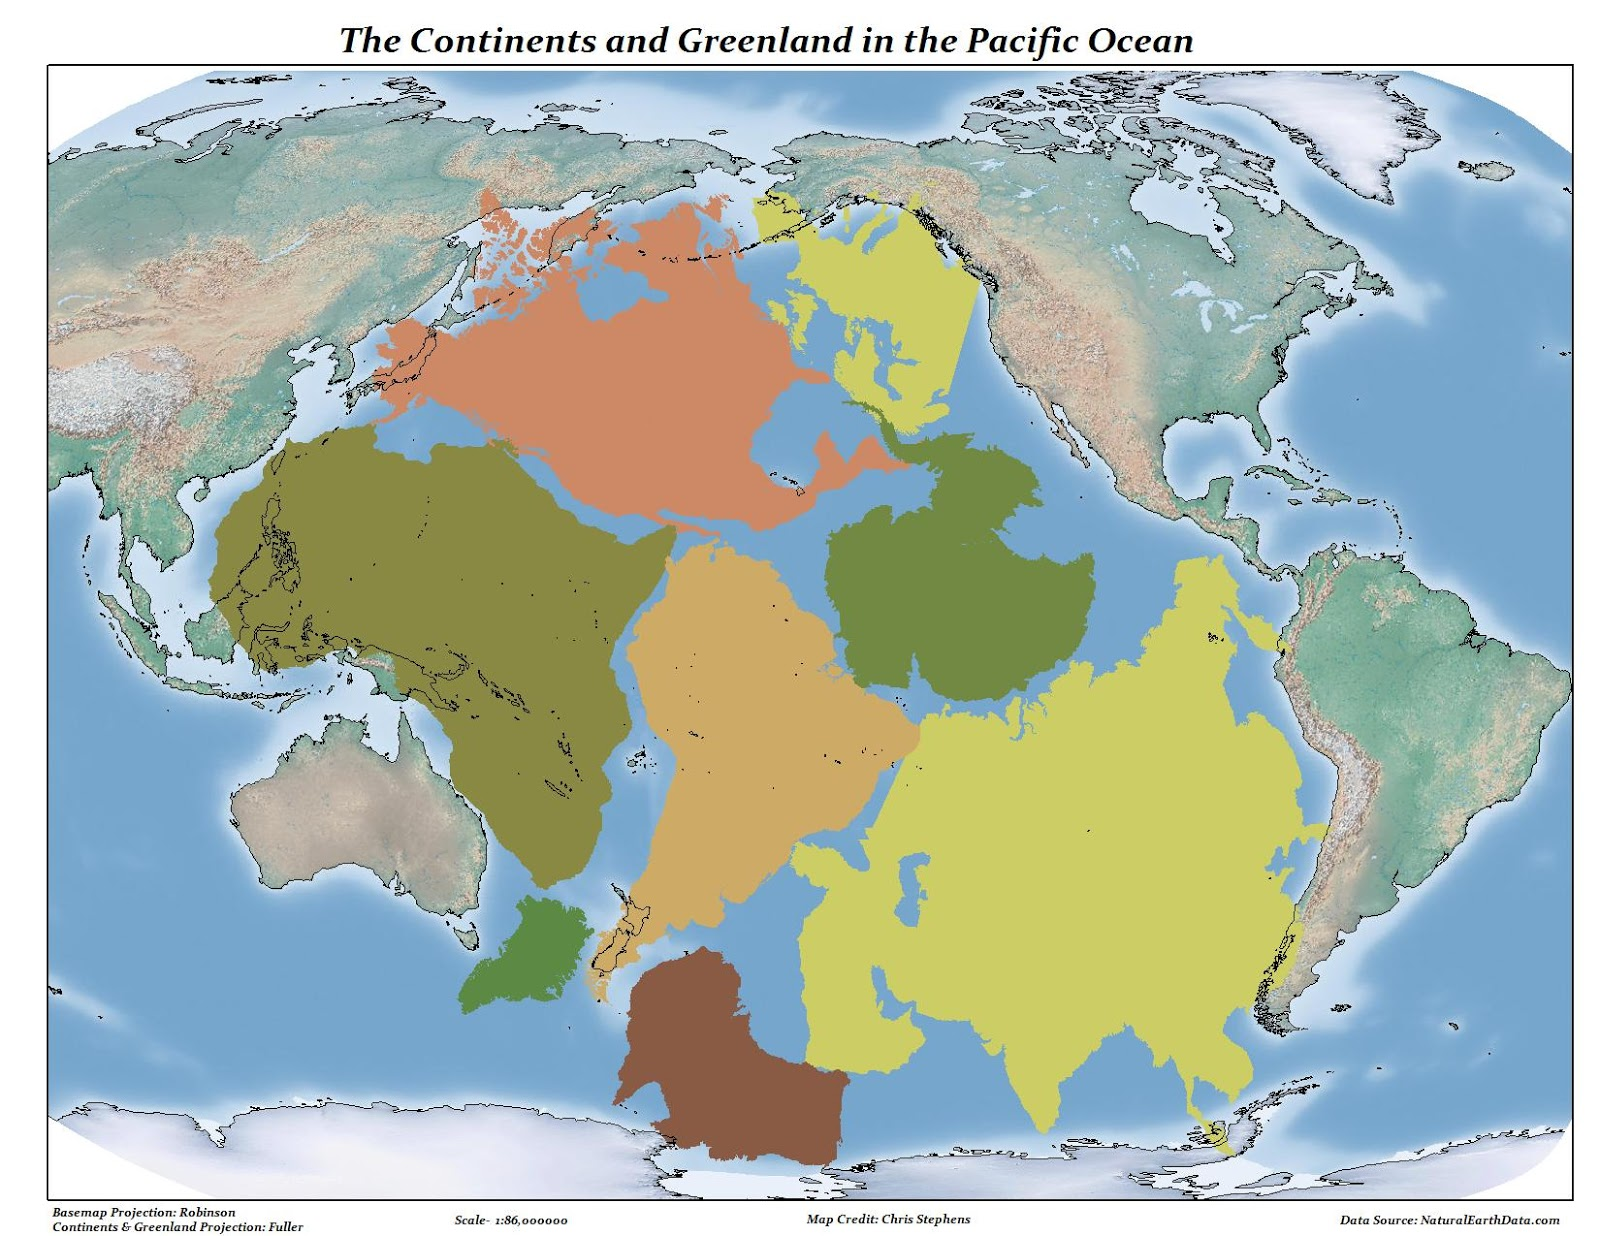 The Continents and Greenland in the Pacific Ocean